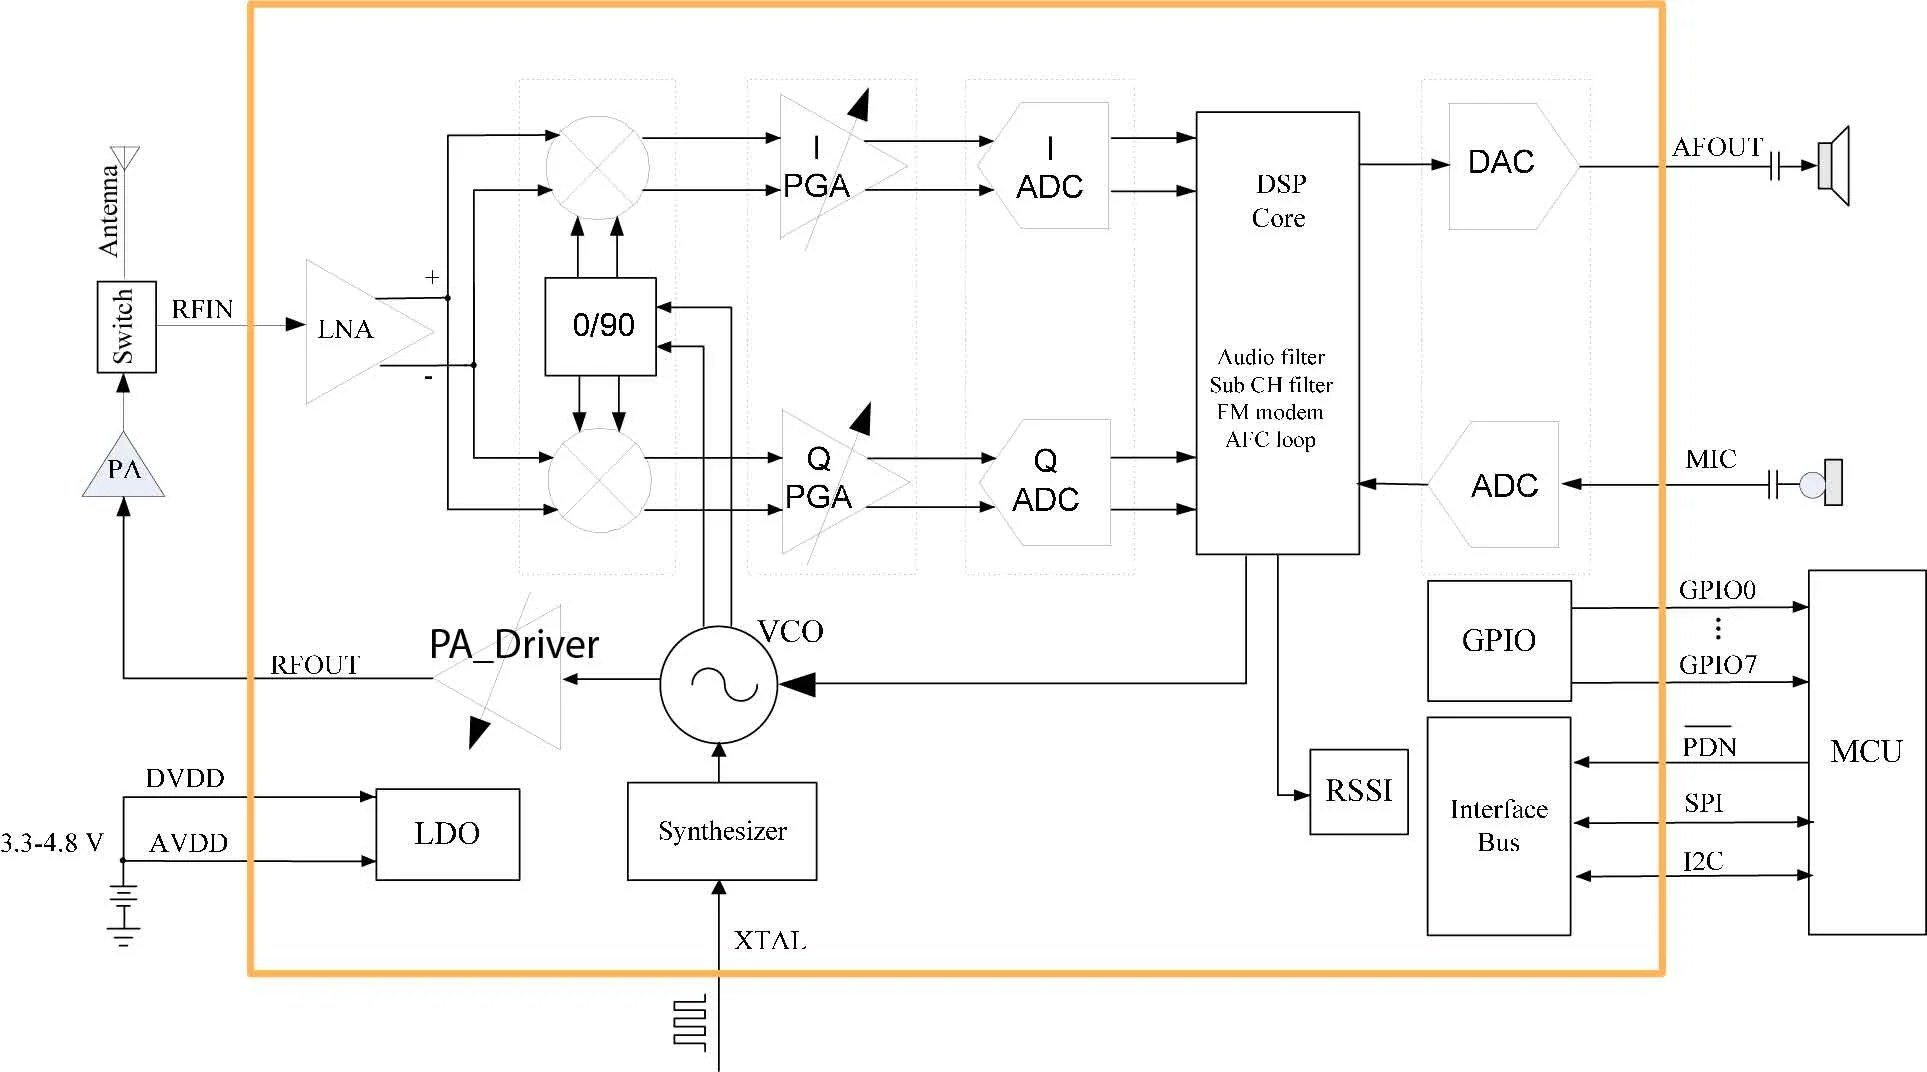 hight resolution of at1846 transceiver ic block diagram from its datasheet image courtesy of rda microelectronics